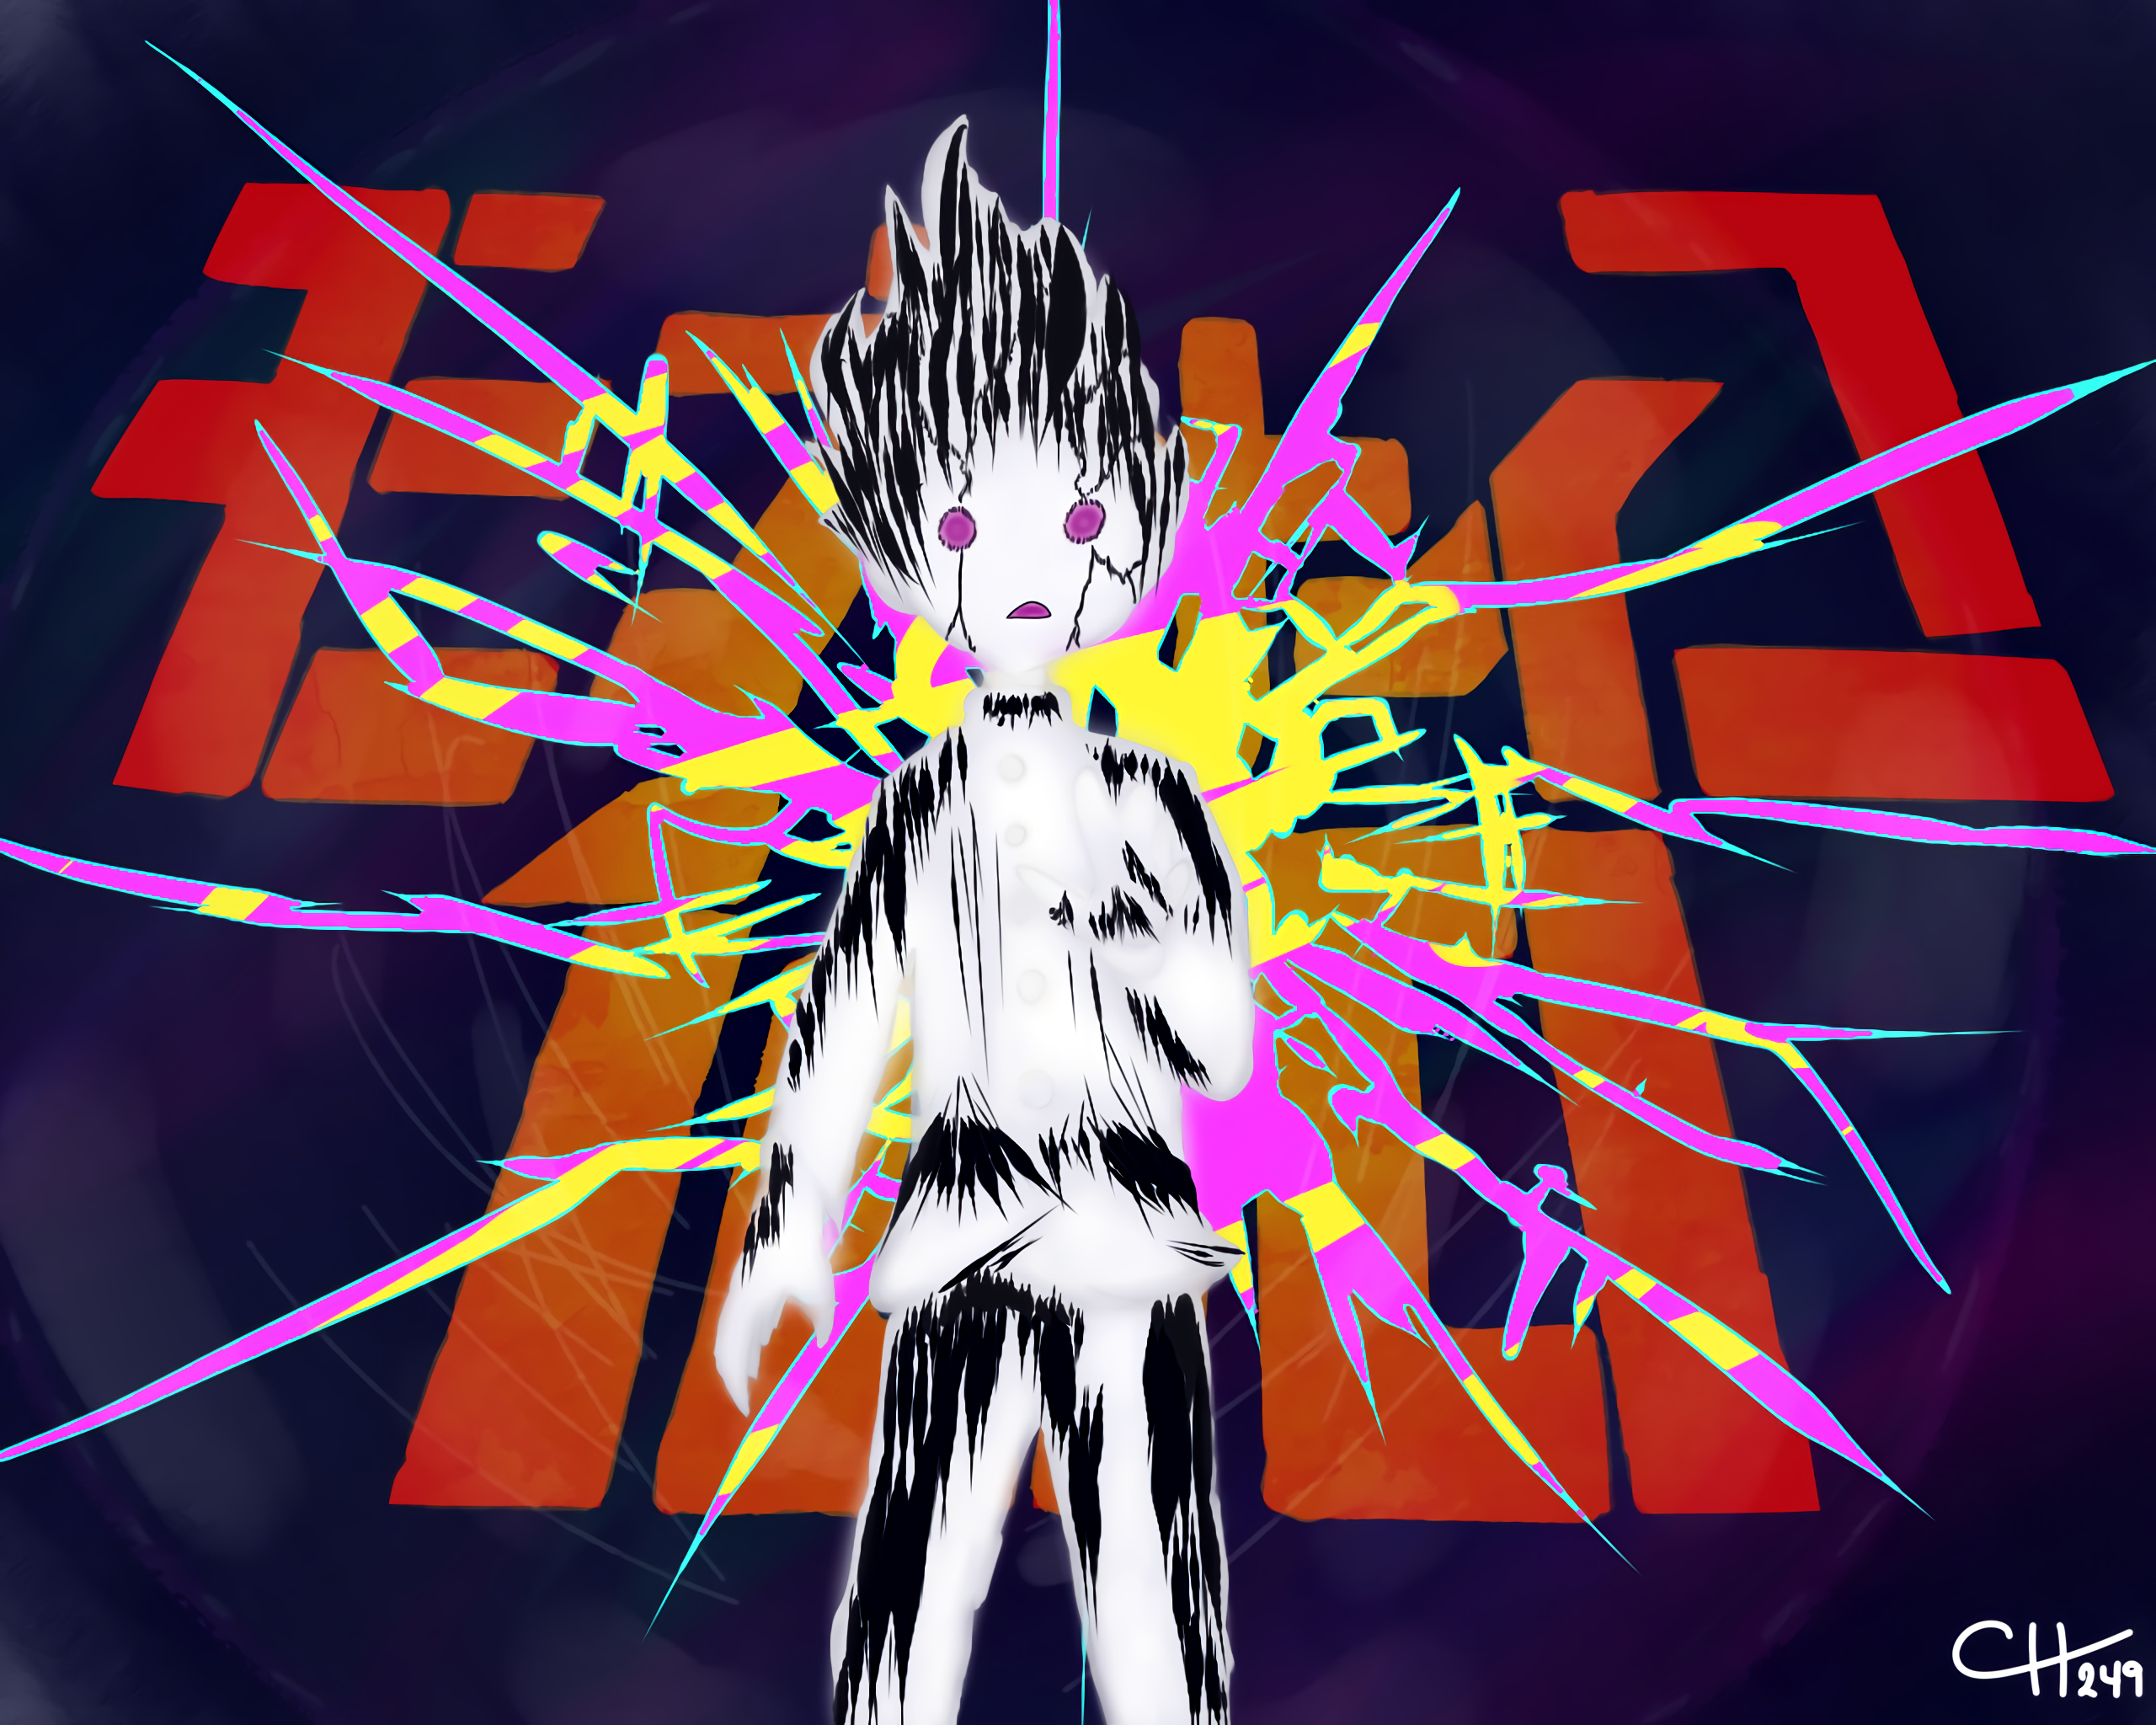 93 Mob Psycho 100 Hd Wallpapers Background Images Wallpaper Abyss